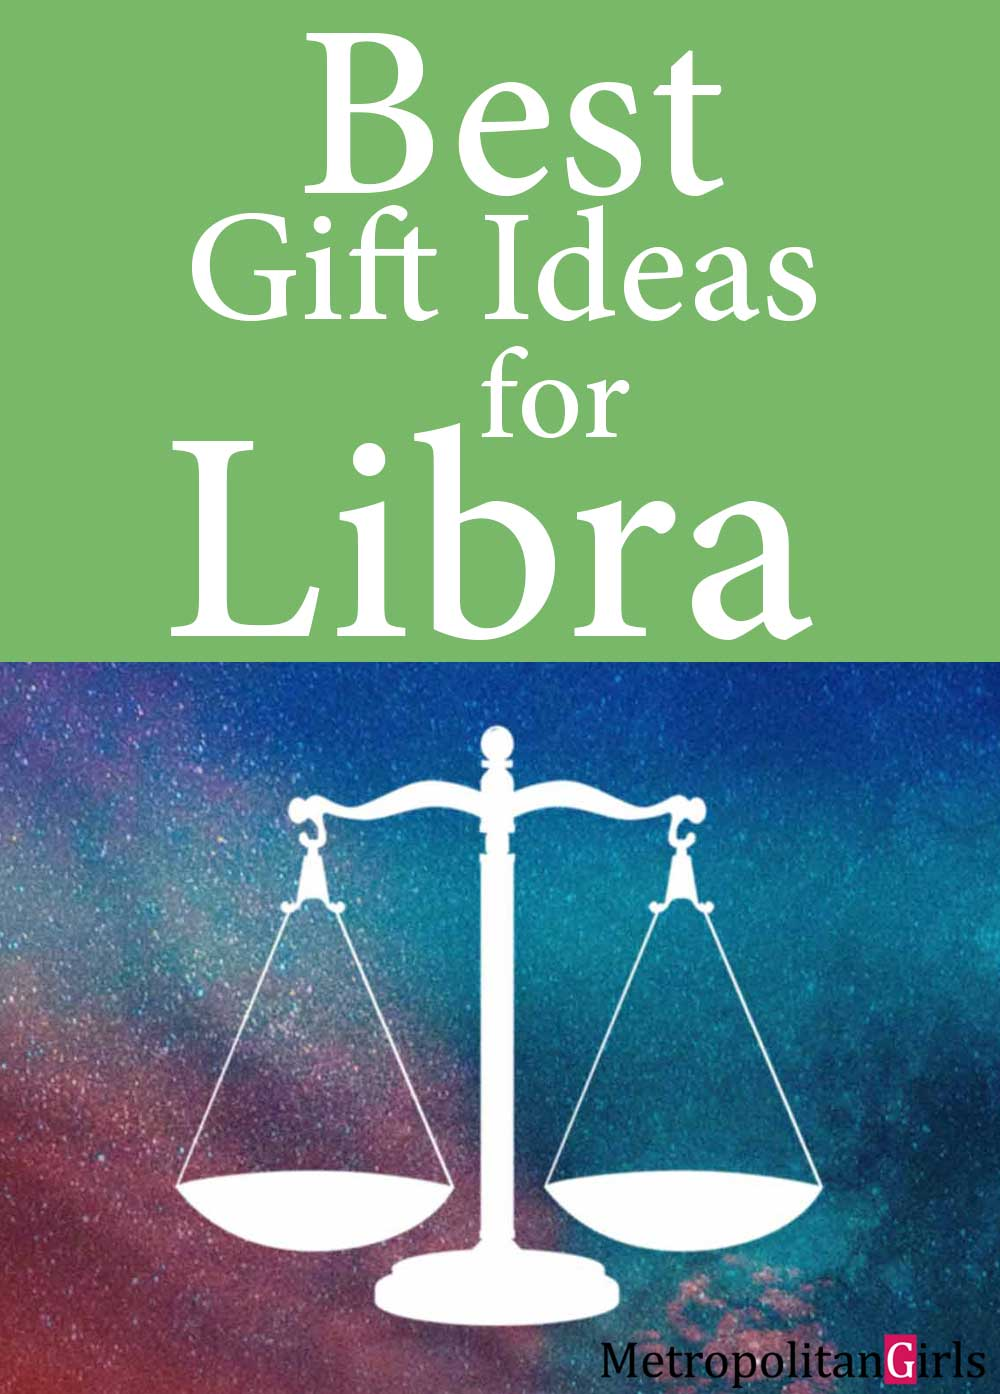 Libra, the sign of justice, is righteous and fair. If you're shopping for a Libra, find out what kind of gifts will appeal to them in this Libra gift guide.